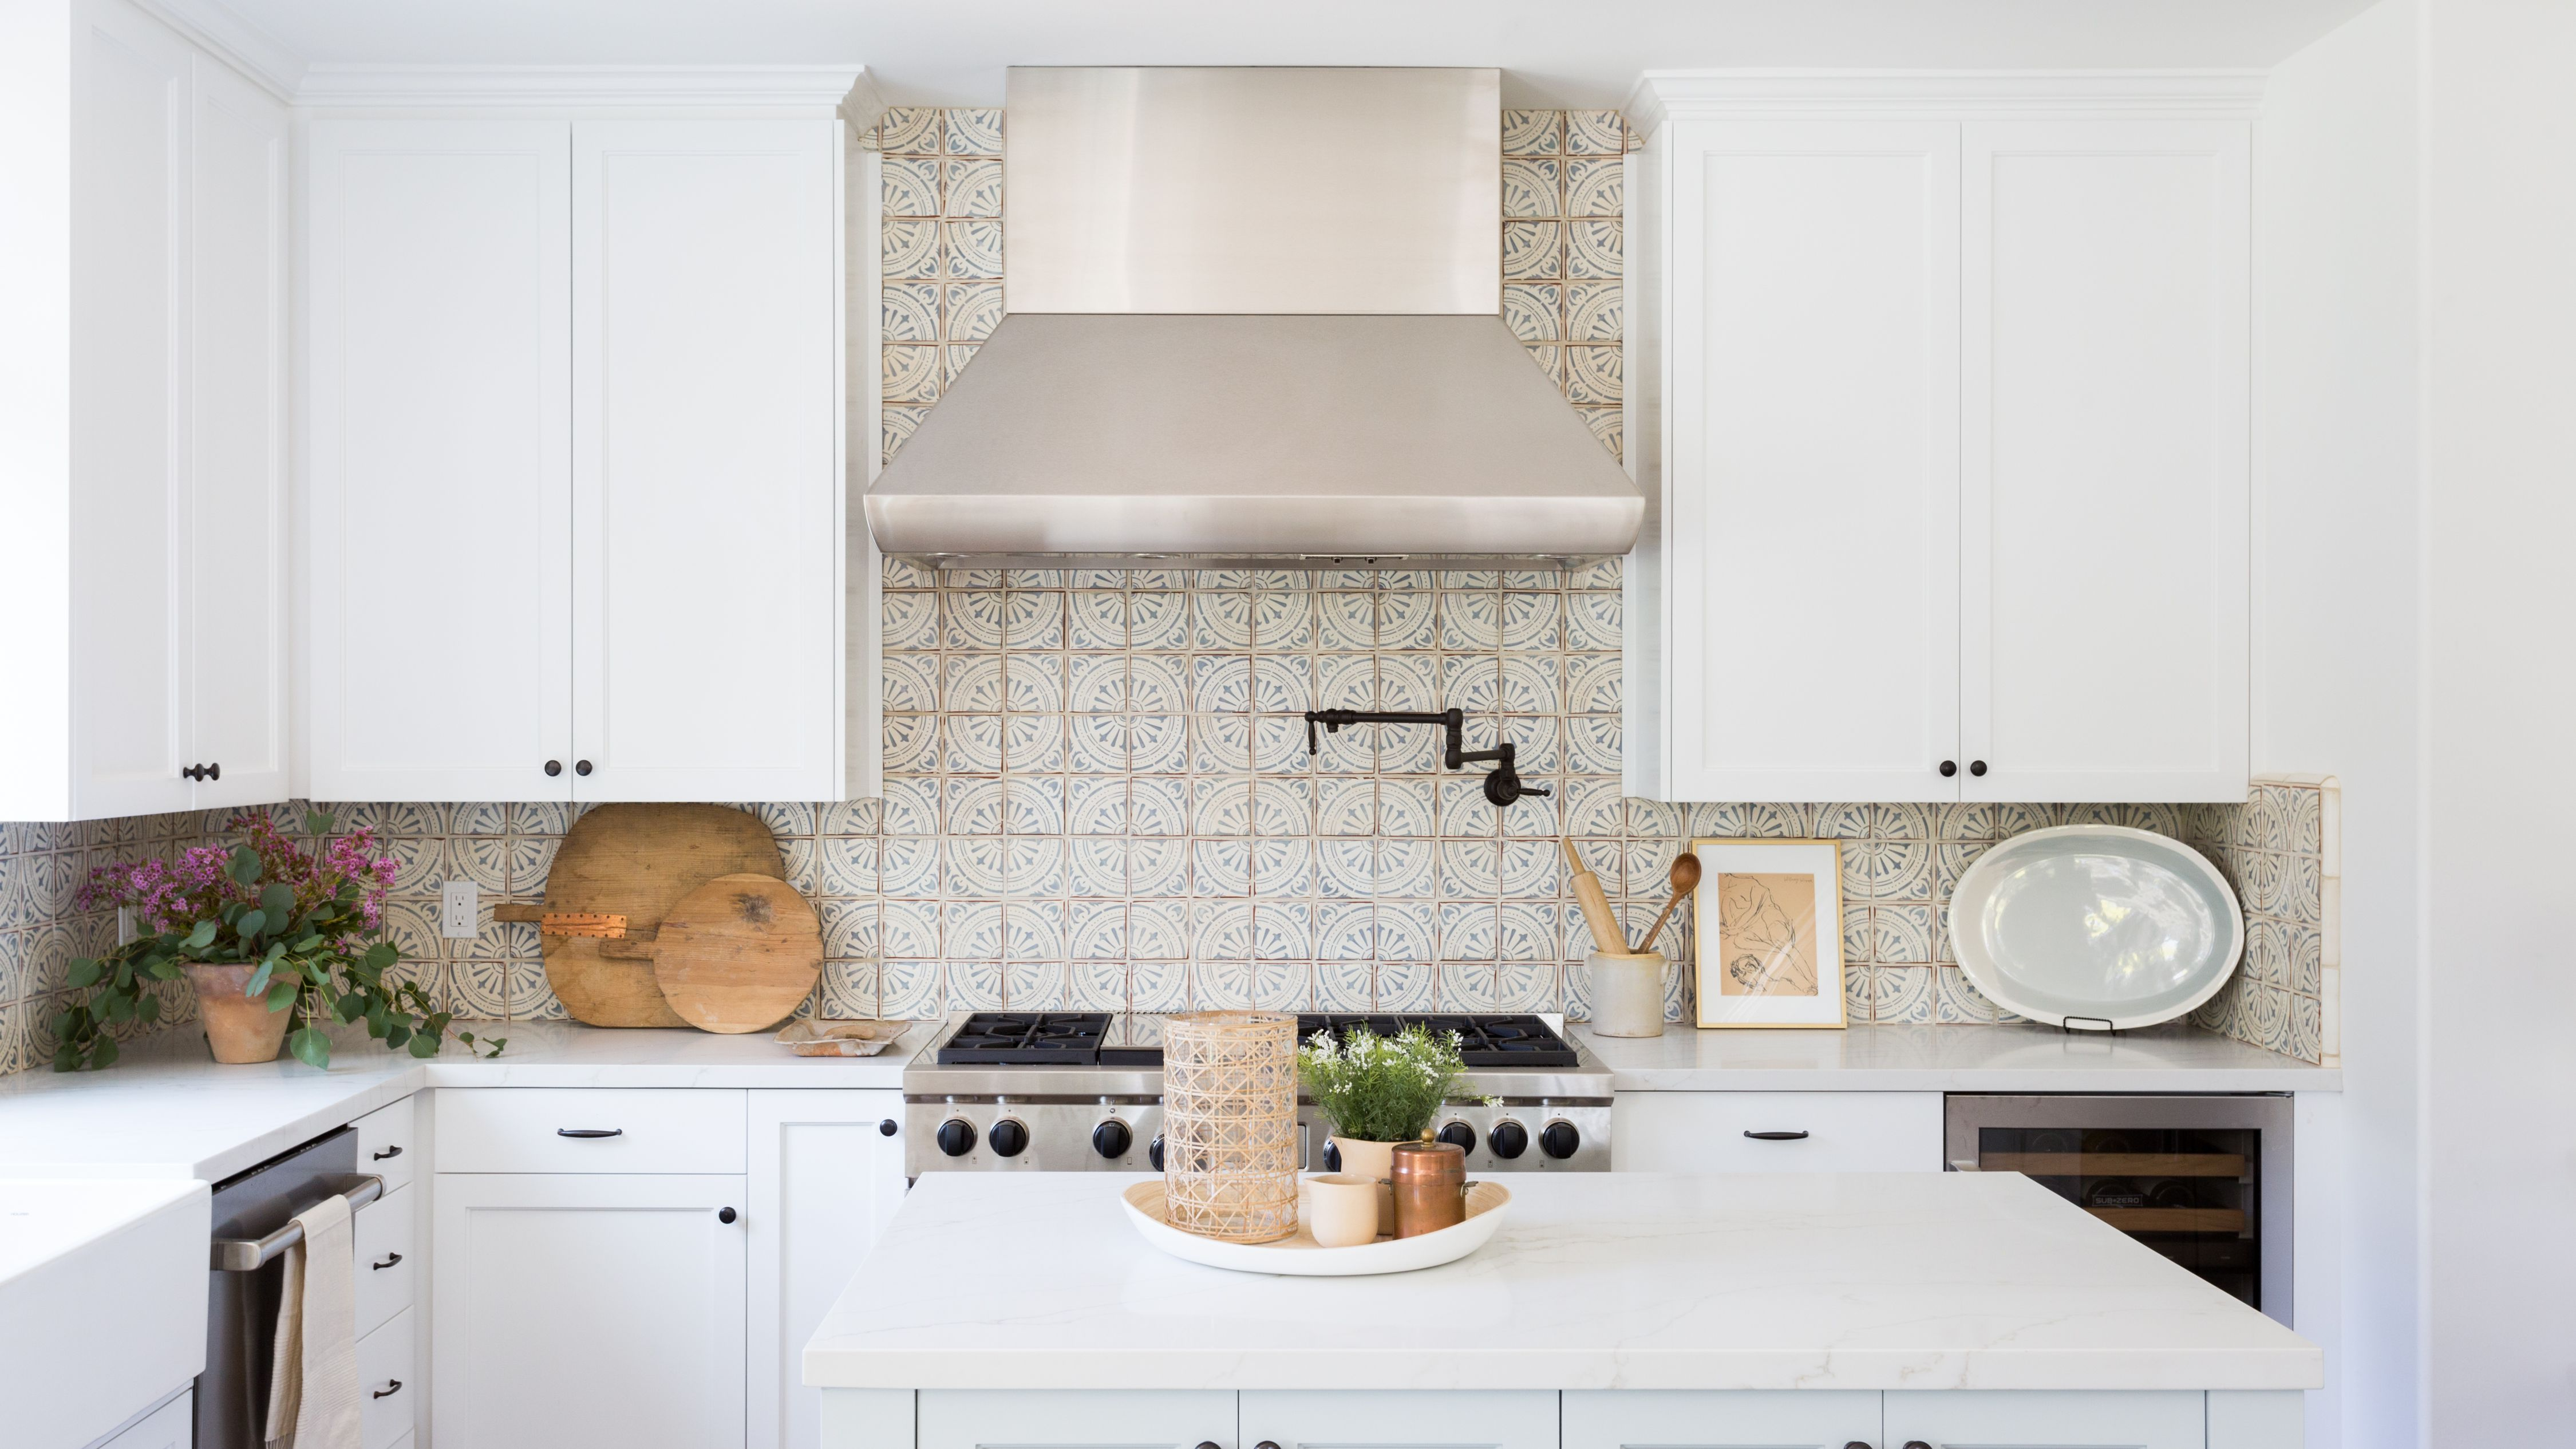 27 Kitchen Tile Backsplash Ideas We Love